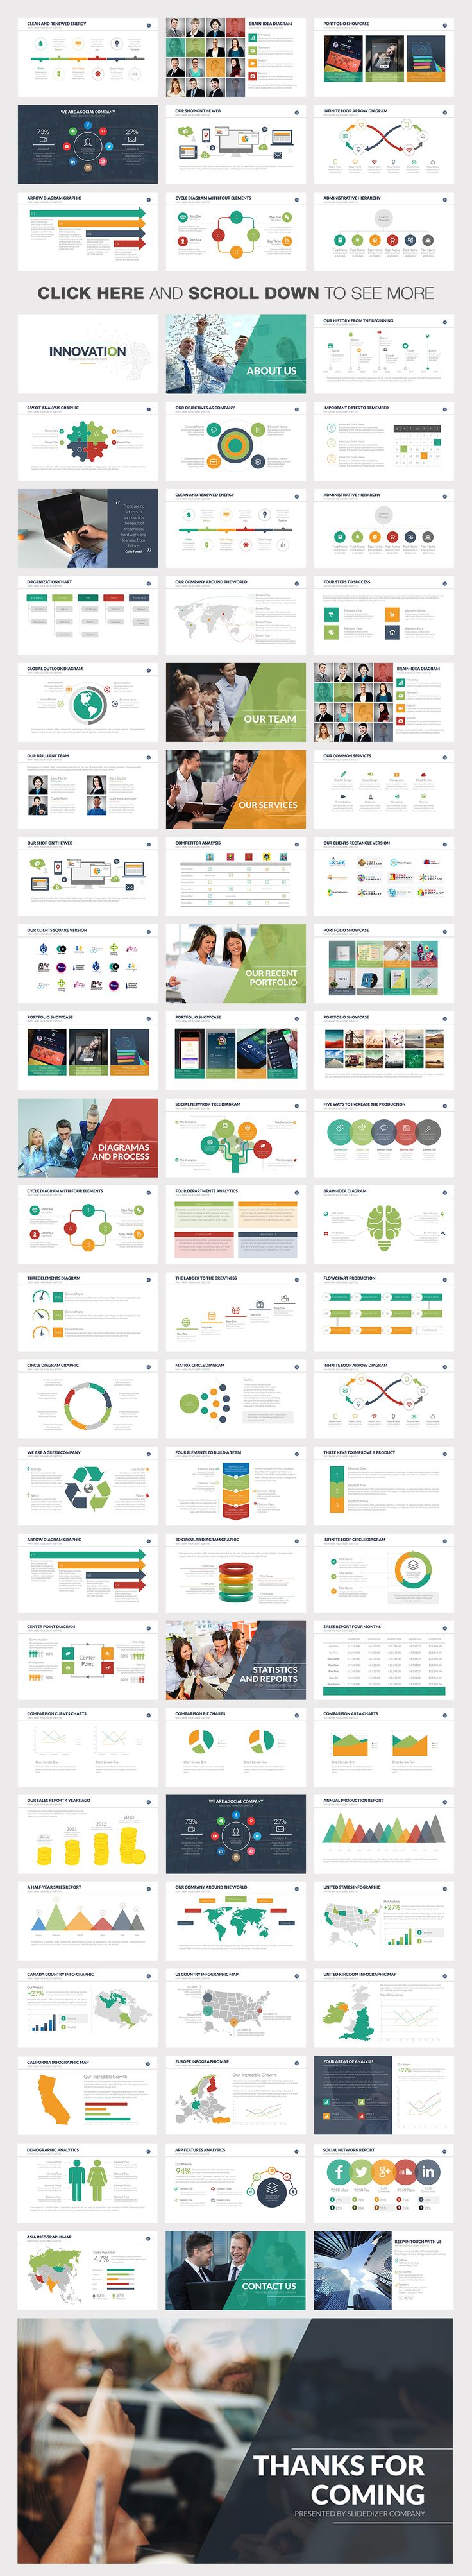 Innovation Powerpoint Template by Slidedizer on Creative Market